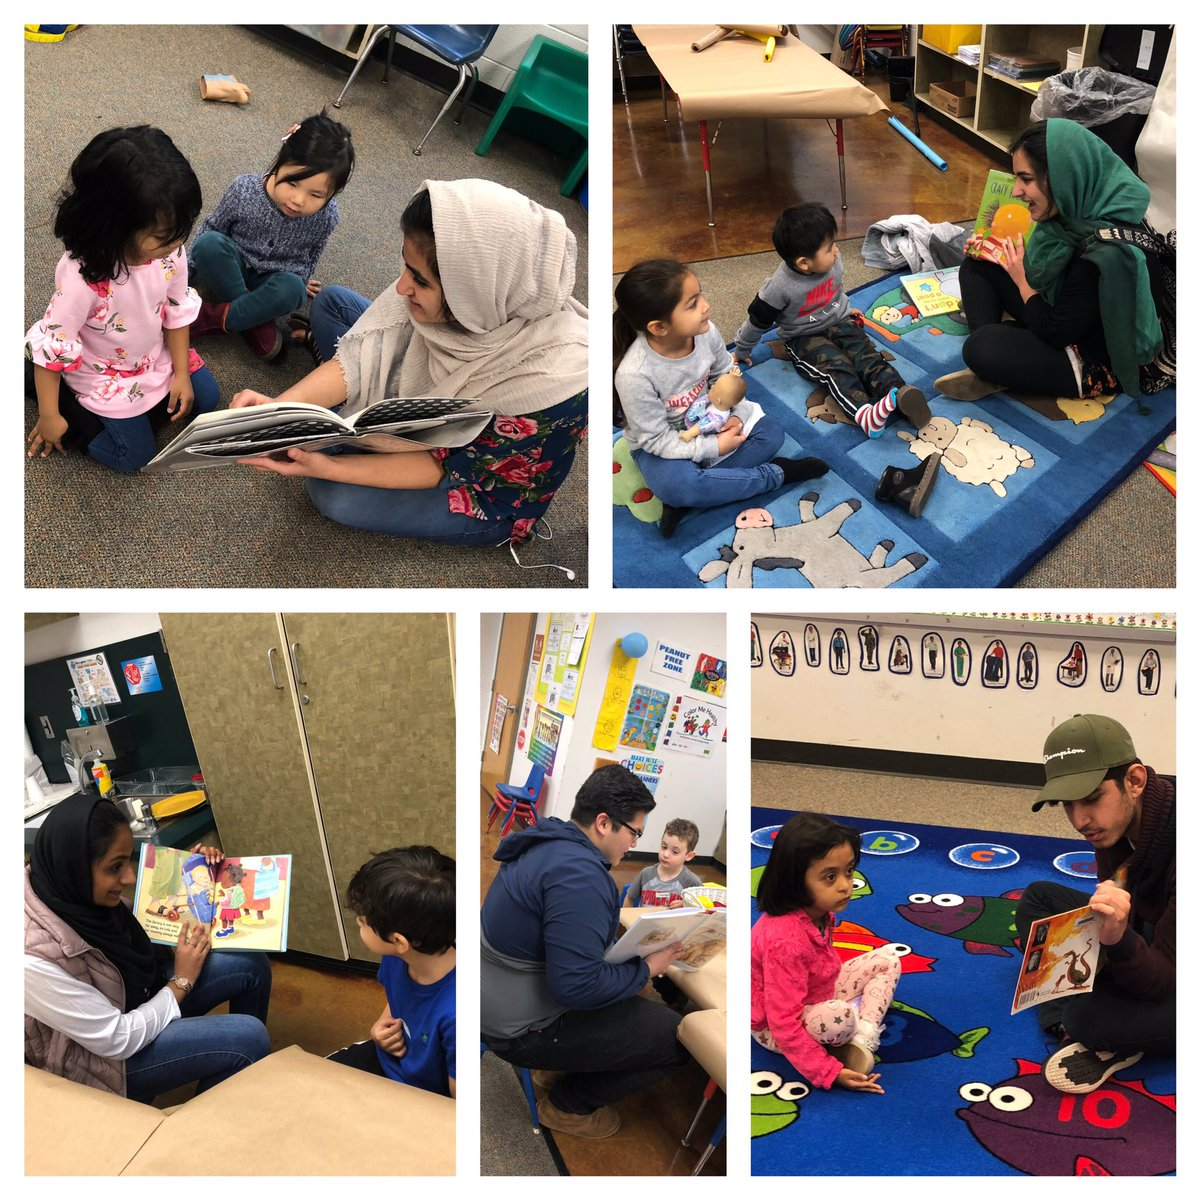 ❤️ of reading reaches across multi-generations at Langston Community Center. <a target='_blank' href='https://t.co/9J4vduGVLI'>https://t.co/9J4vduGVLI</a>